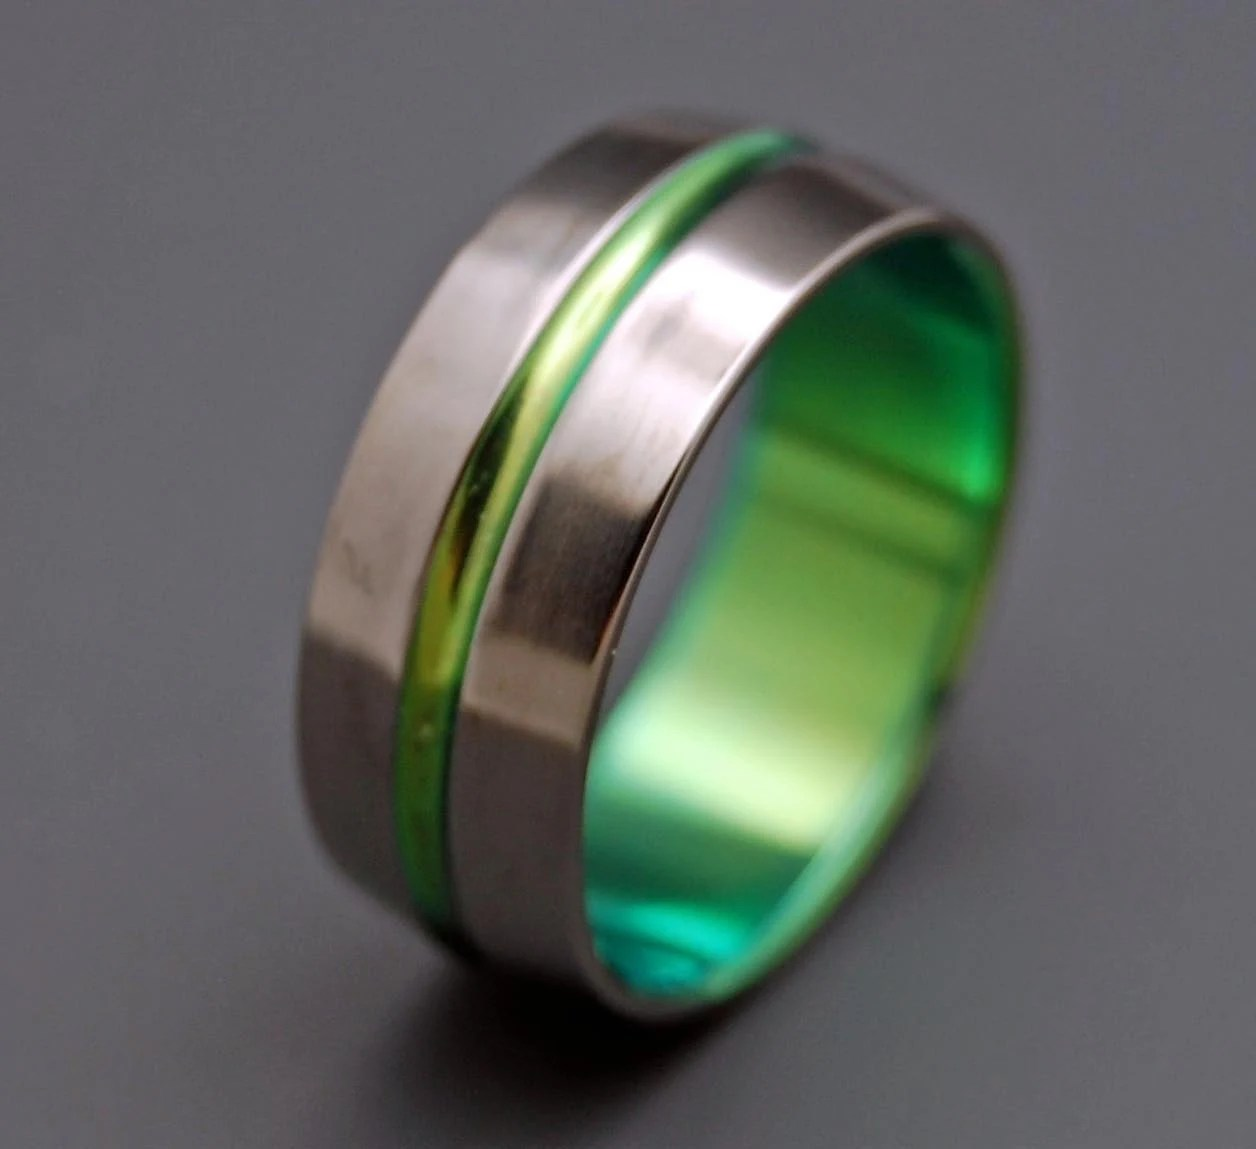 mens titanium ring mens titanium wedding band Titanium wedding ring wedding ring titaniun rings mens ring womens rings eco friendly INSPIRED BY GREEN